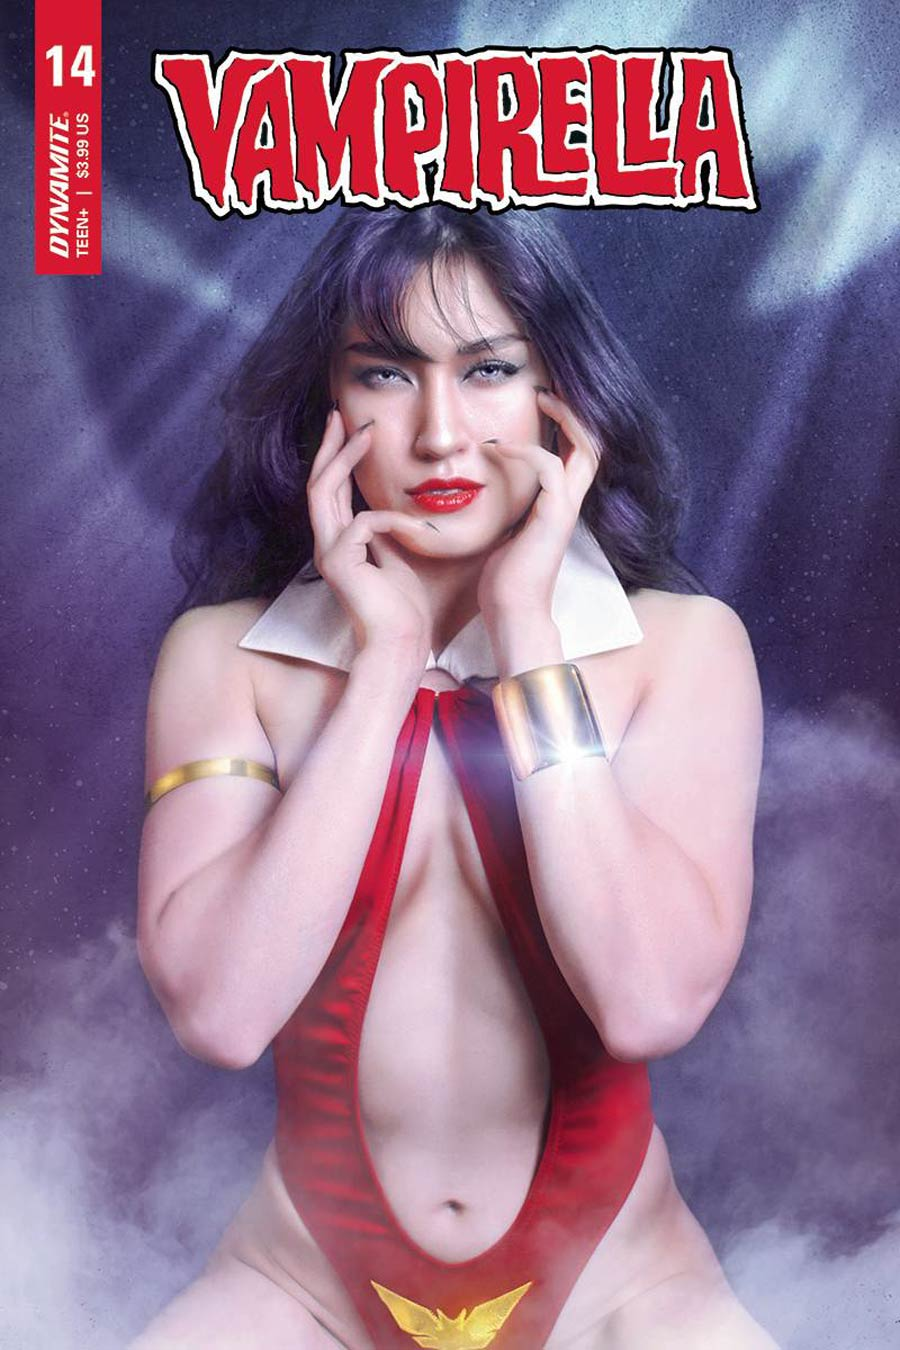 Vampirella Vol 8 #14 Cover E Variant Krista Lee Cosplay Photo Cover